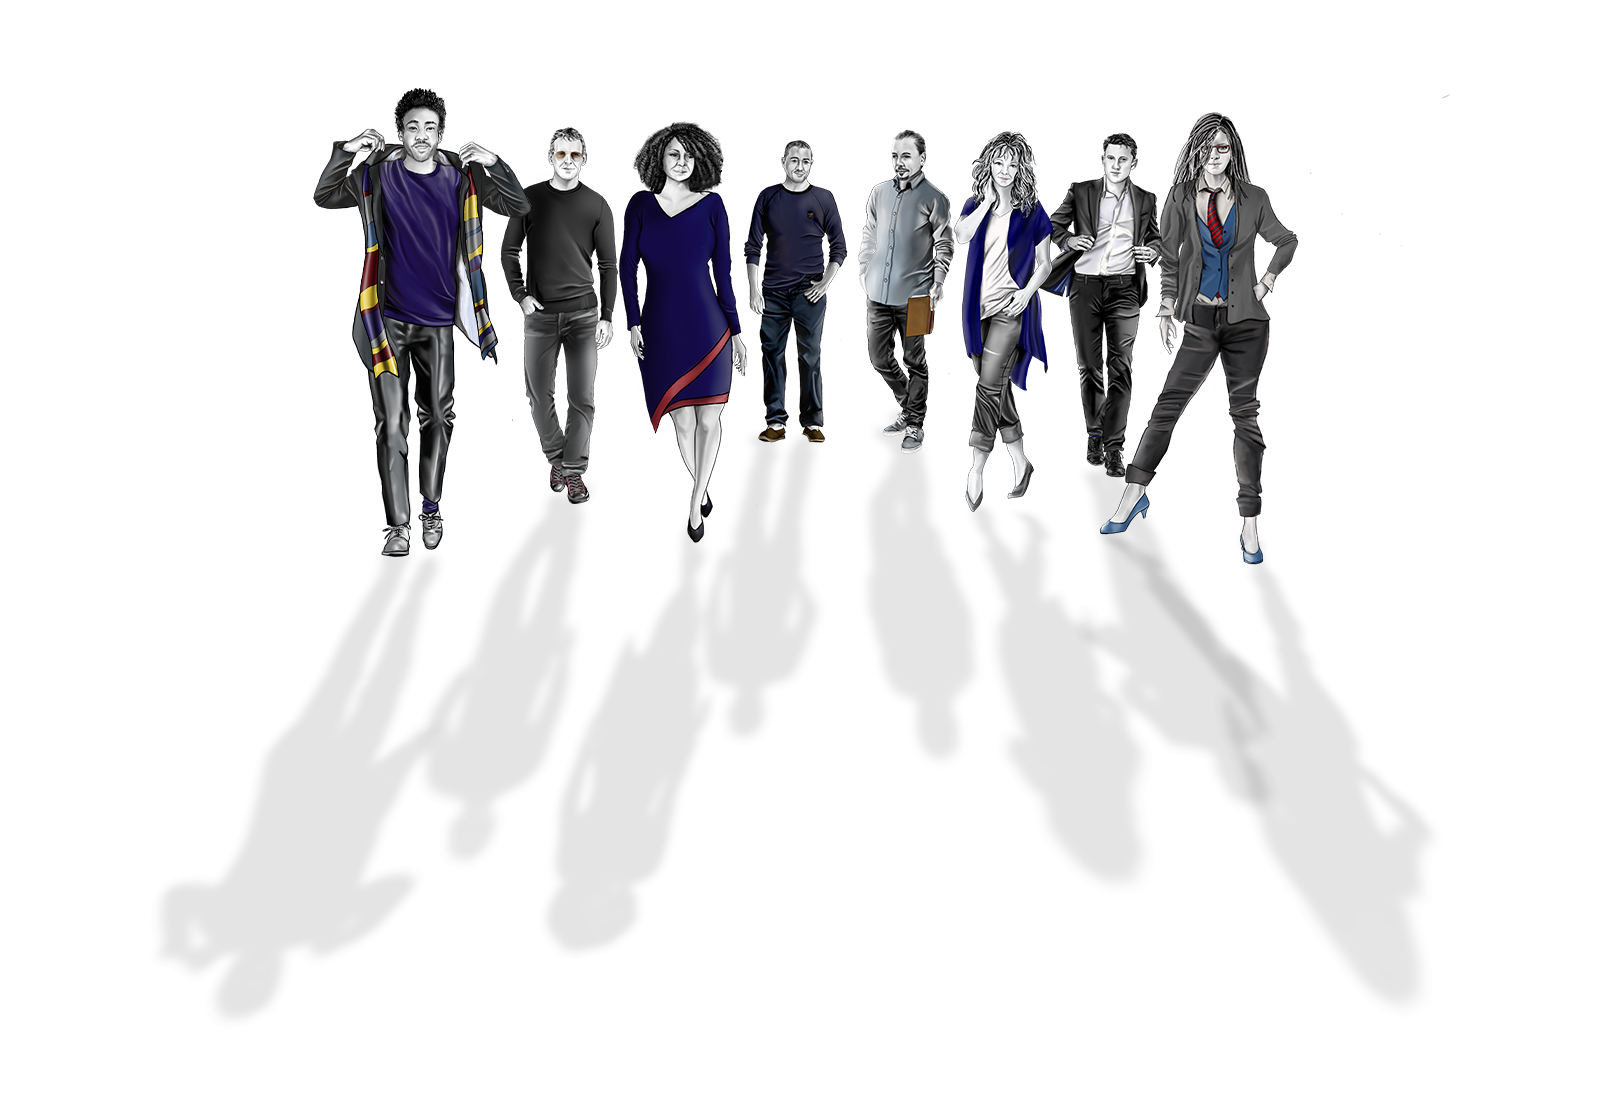 A final glimpse at the Cast of Characters.